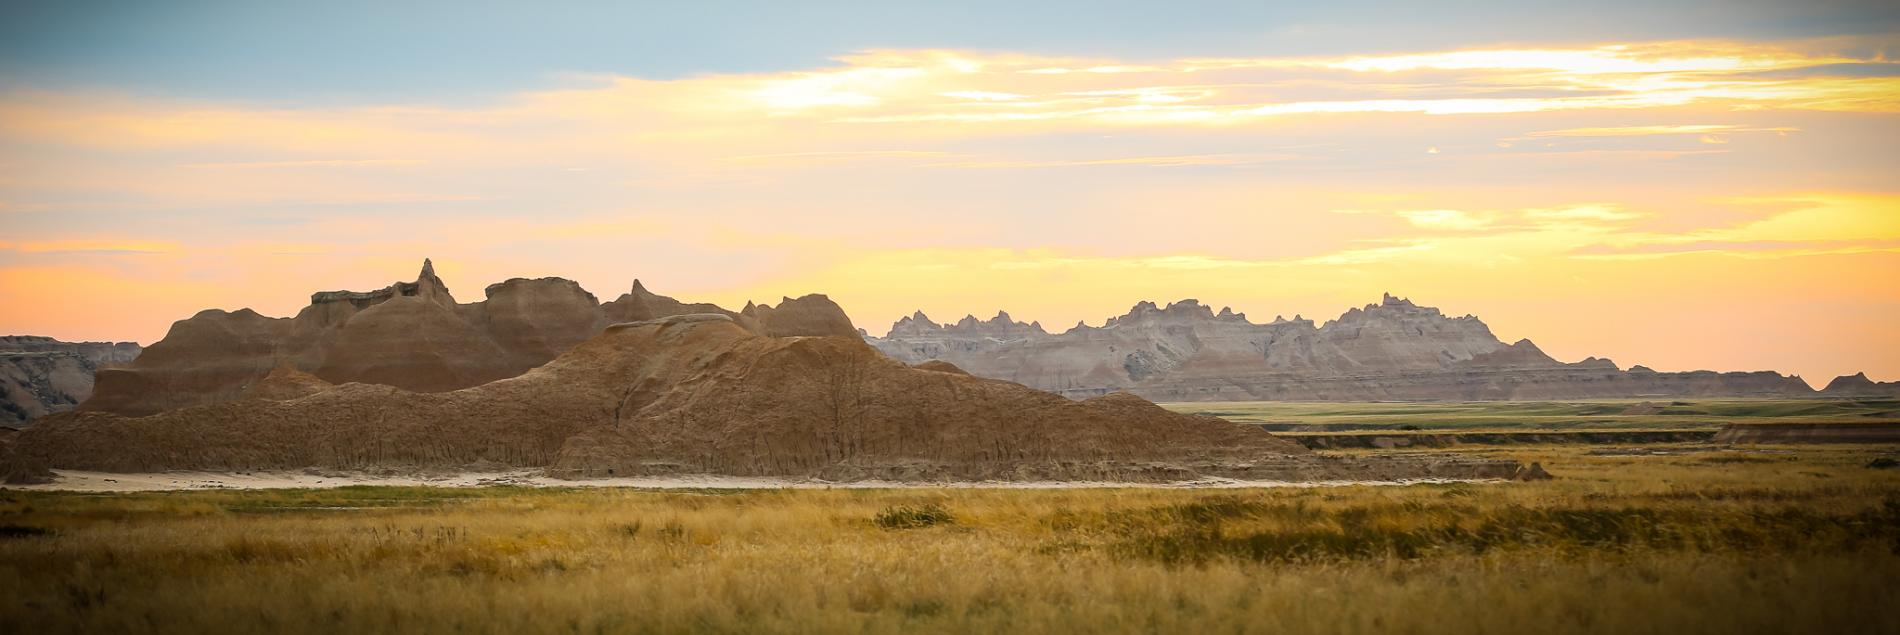 Badlands National Park | Photo by: Greg Valladolid